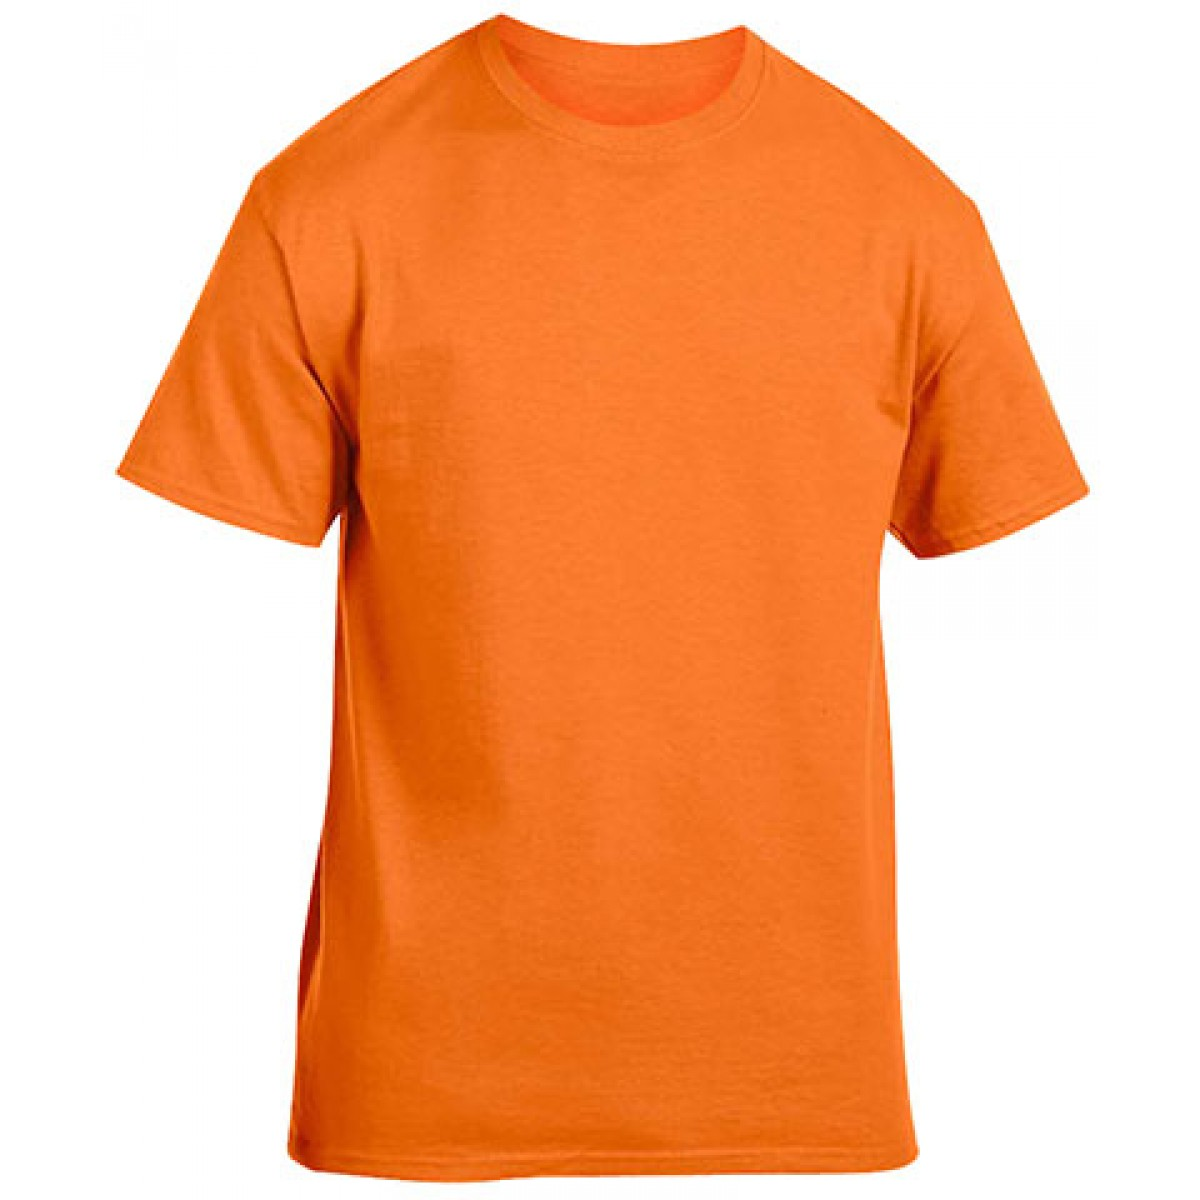 Cotton Short Sleeve T-Shirt-Safety Orange-YS